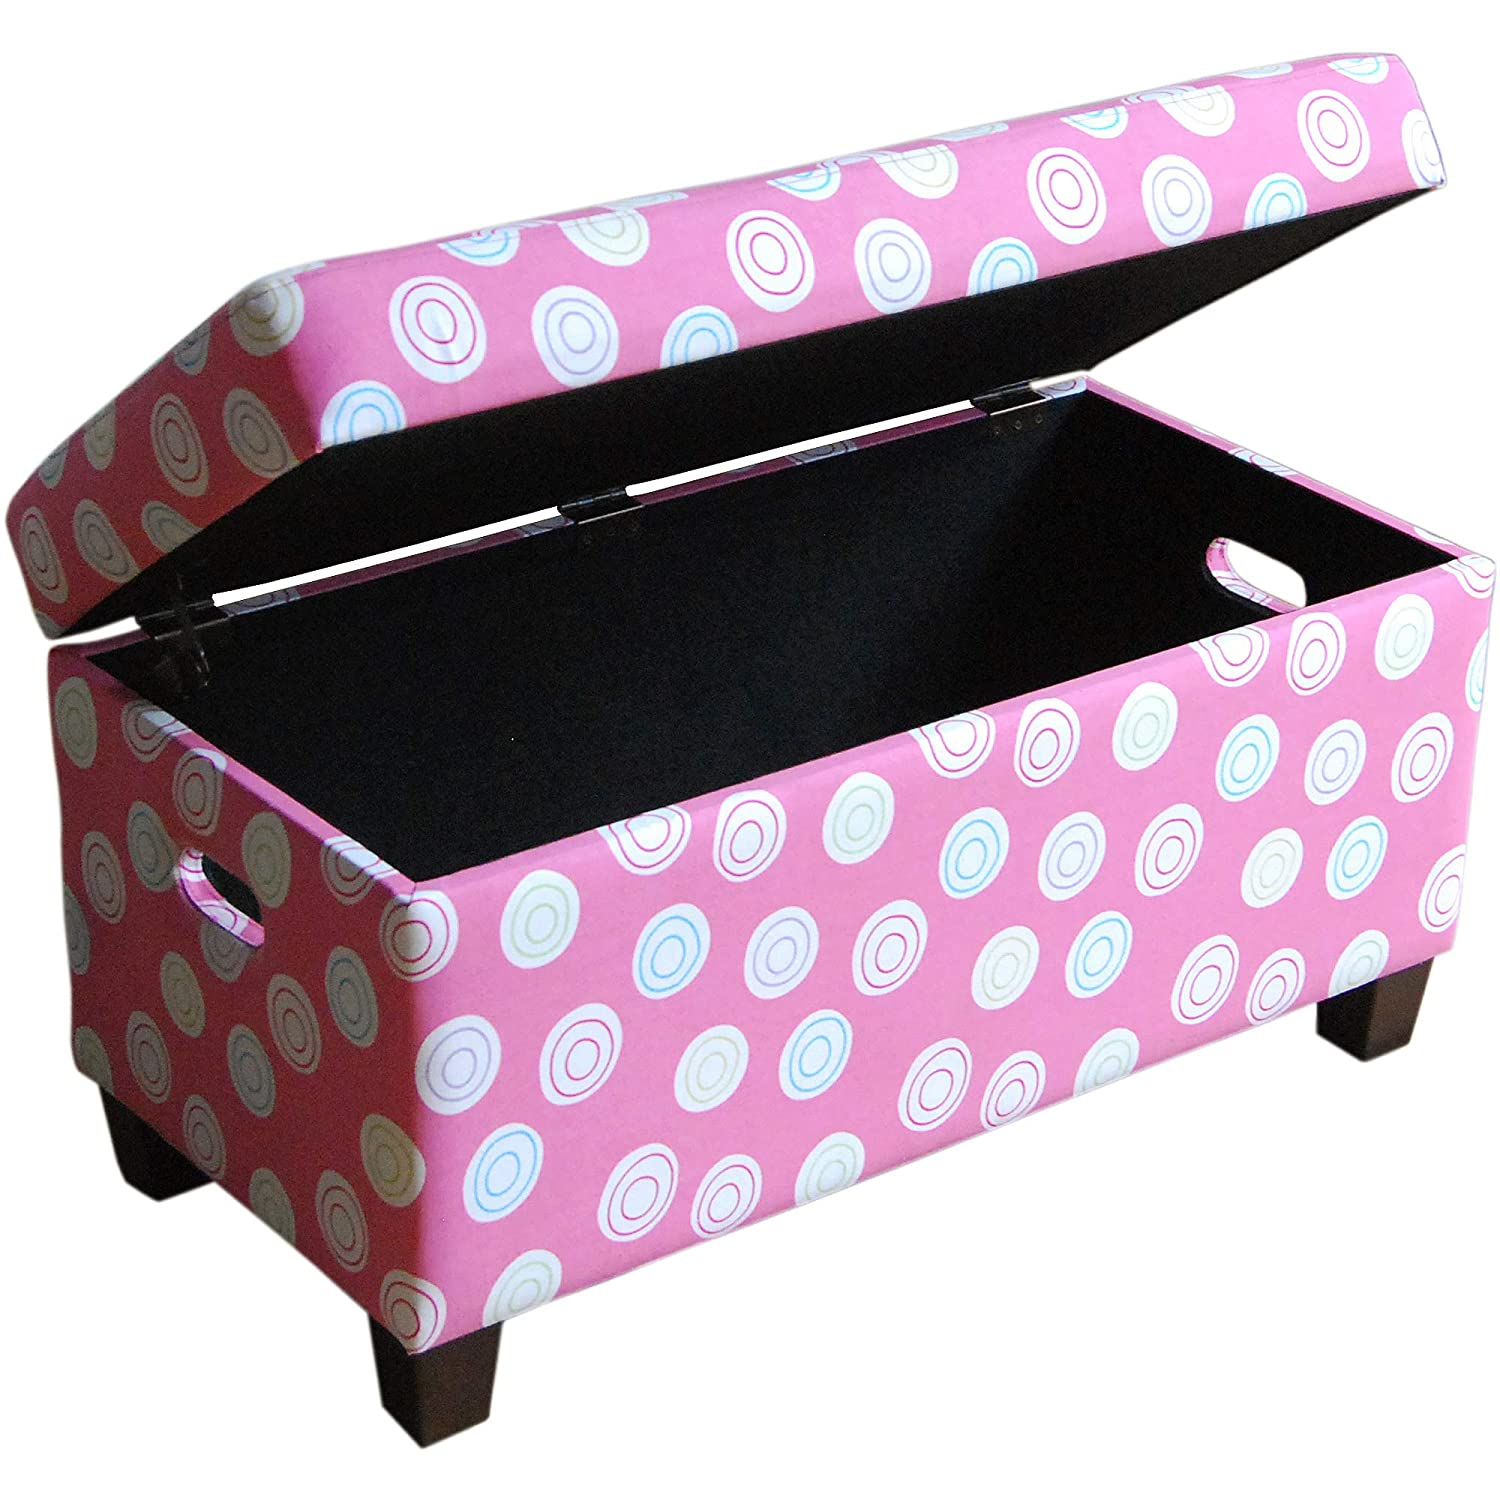 Storage bench entryway furniture upholstered cushion top foam padding pink wooden frame cut out handles patterned fabric bundle with our expert